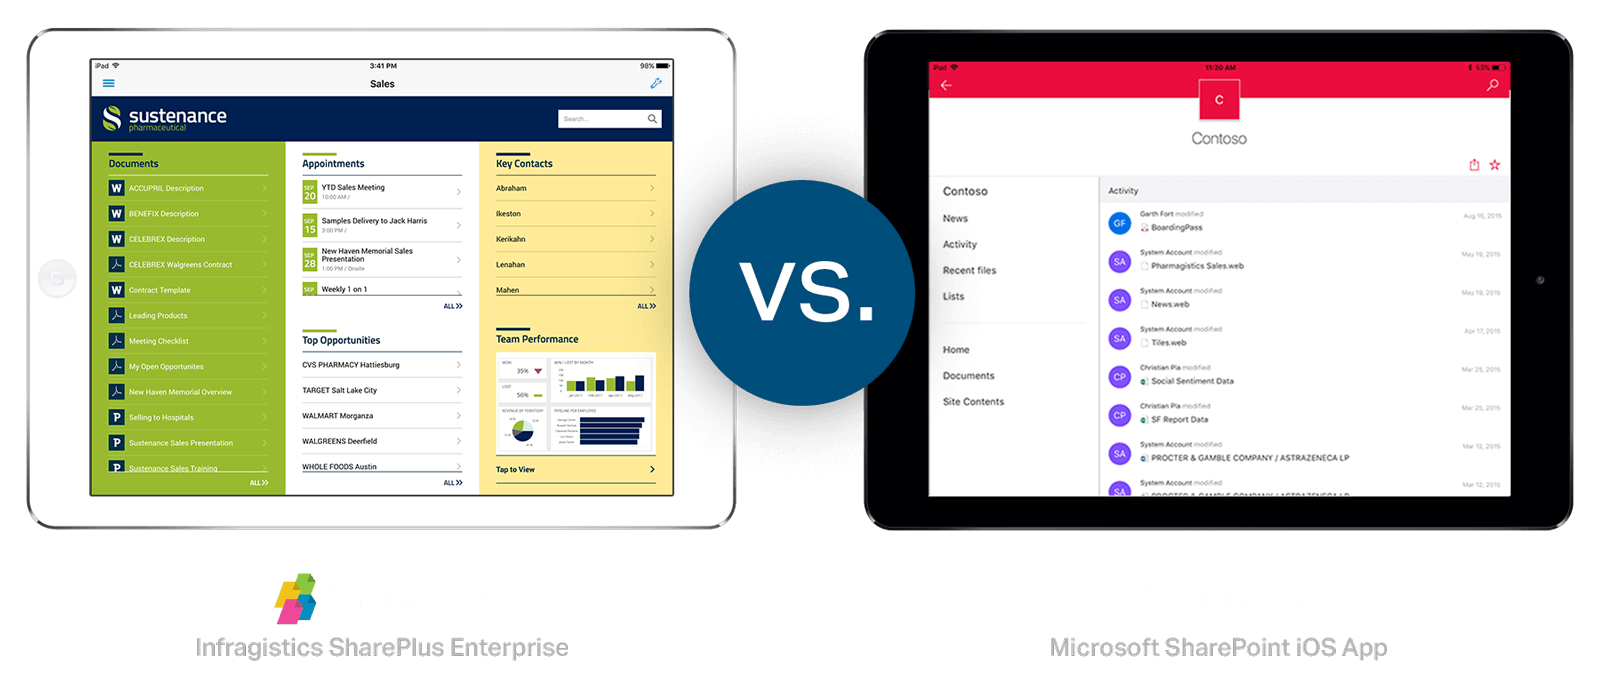 SharePlus mobile solution versus SharePoint mobility application for enterprise-ready management